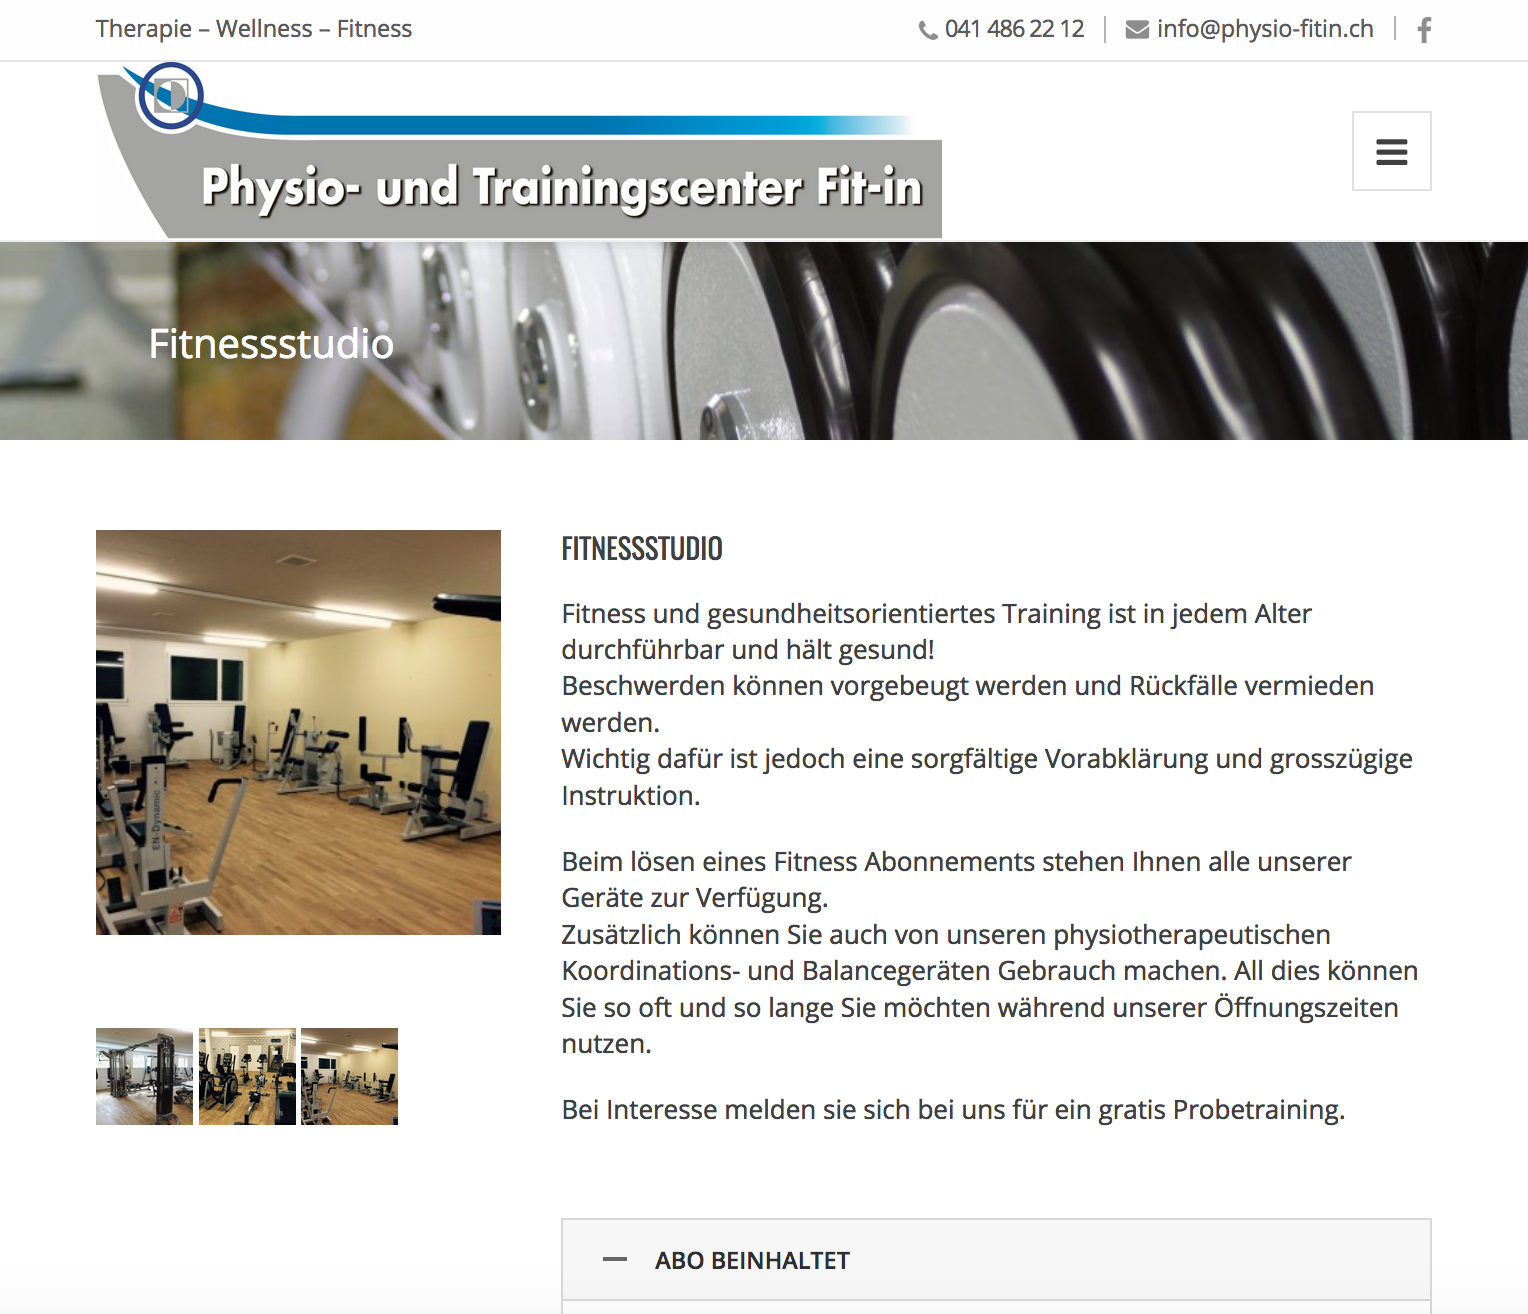 Homepage Physio-fitin